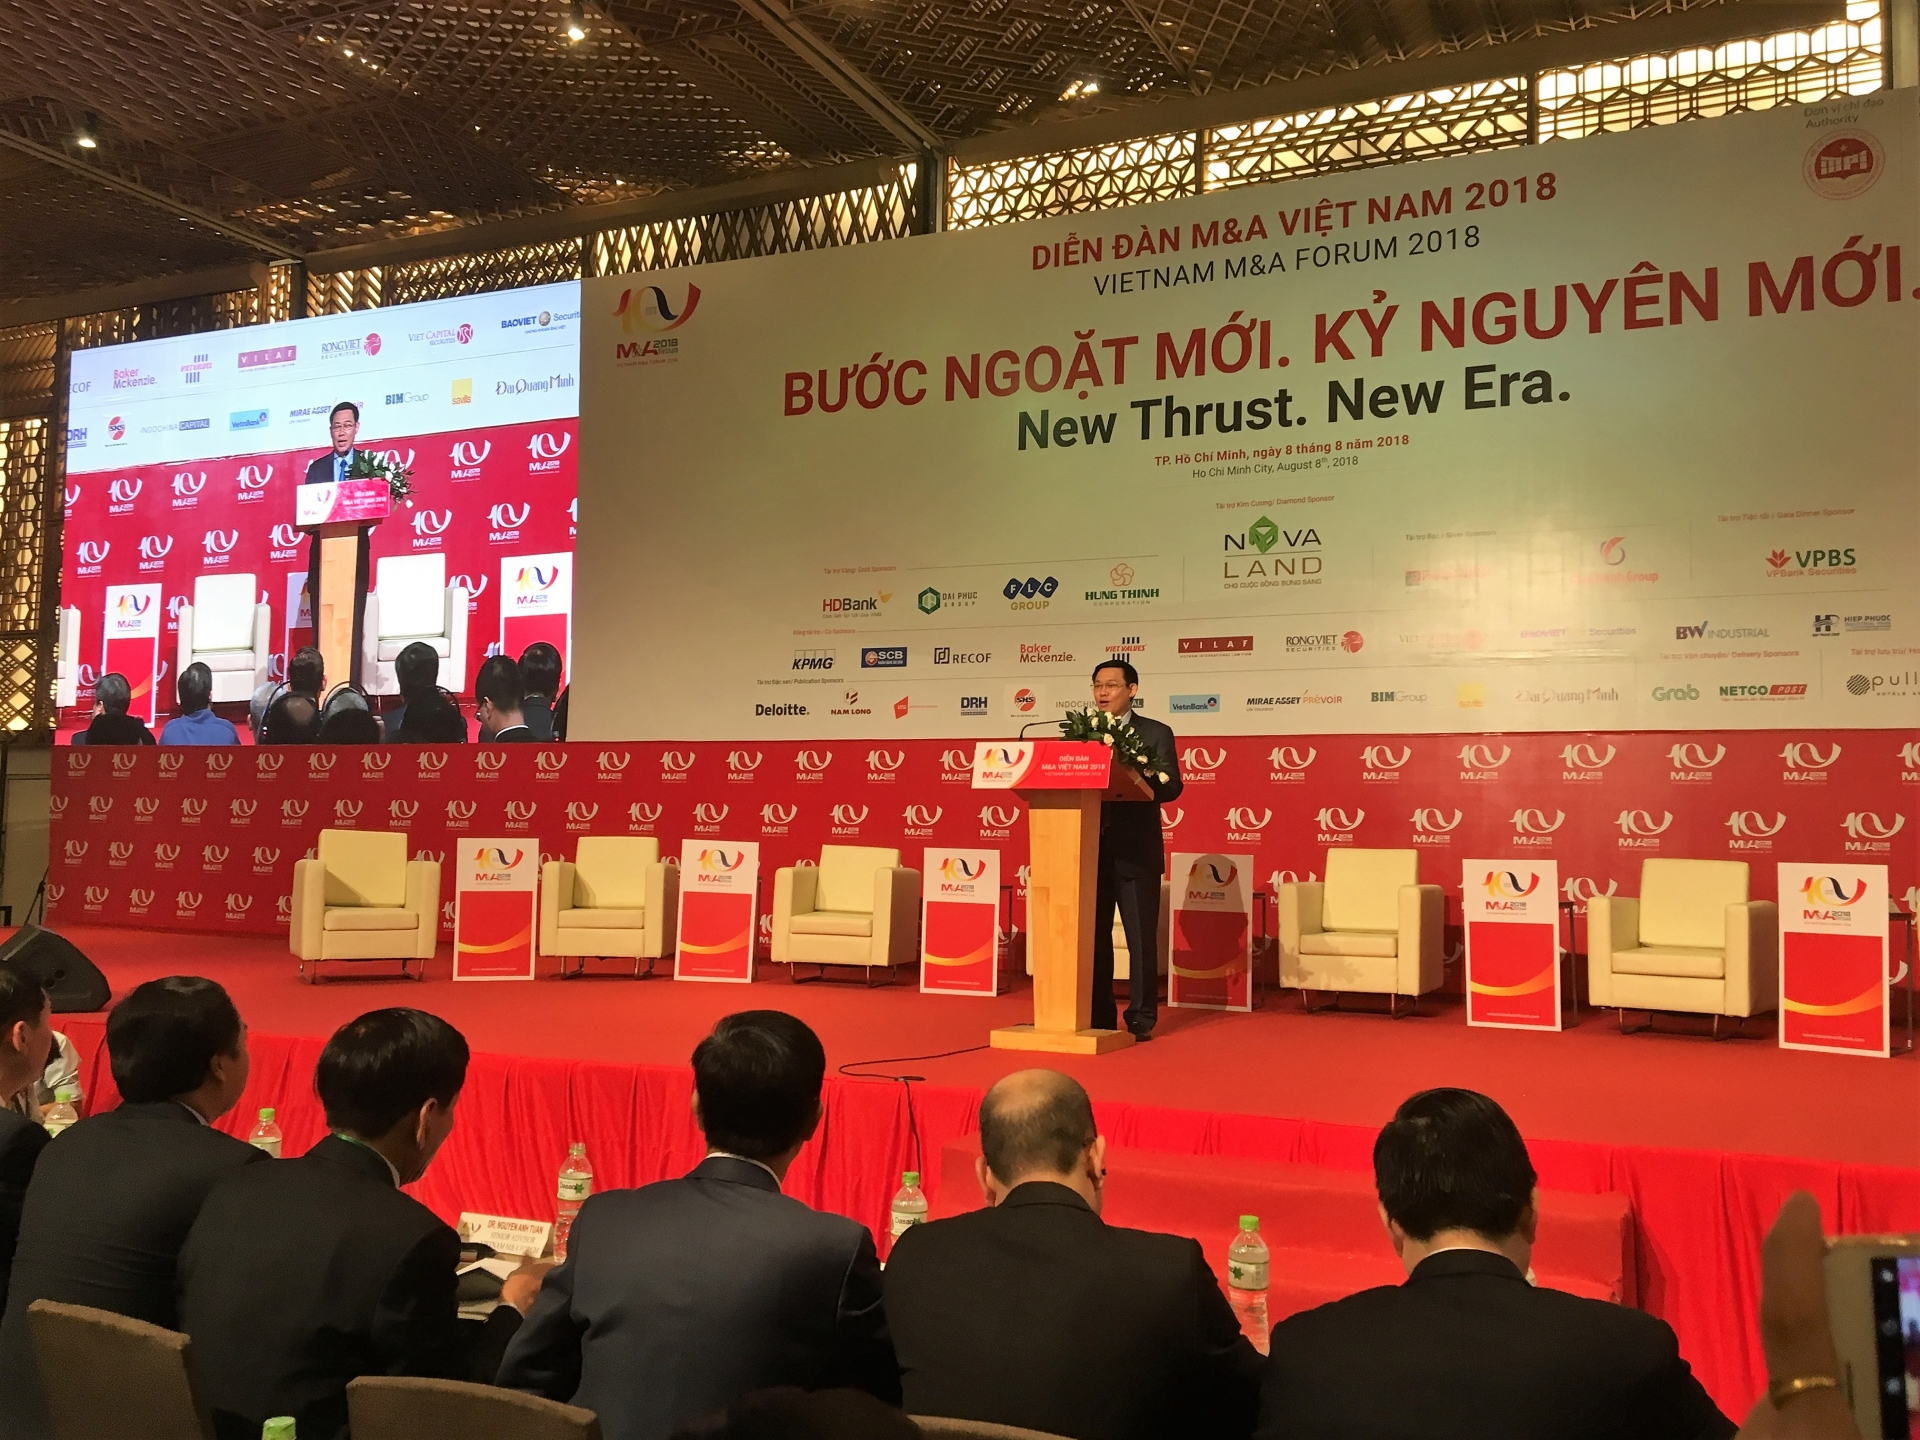 vietnam ma forum 2018 opens 10th edition